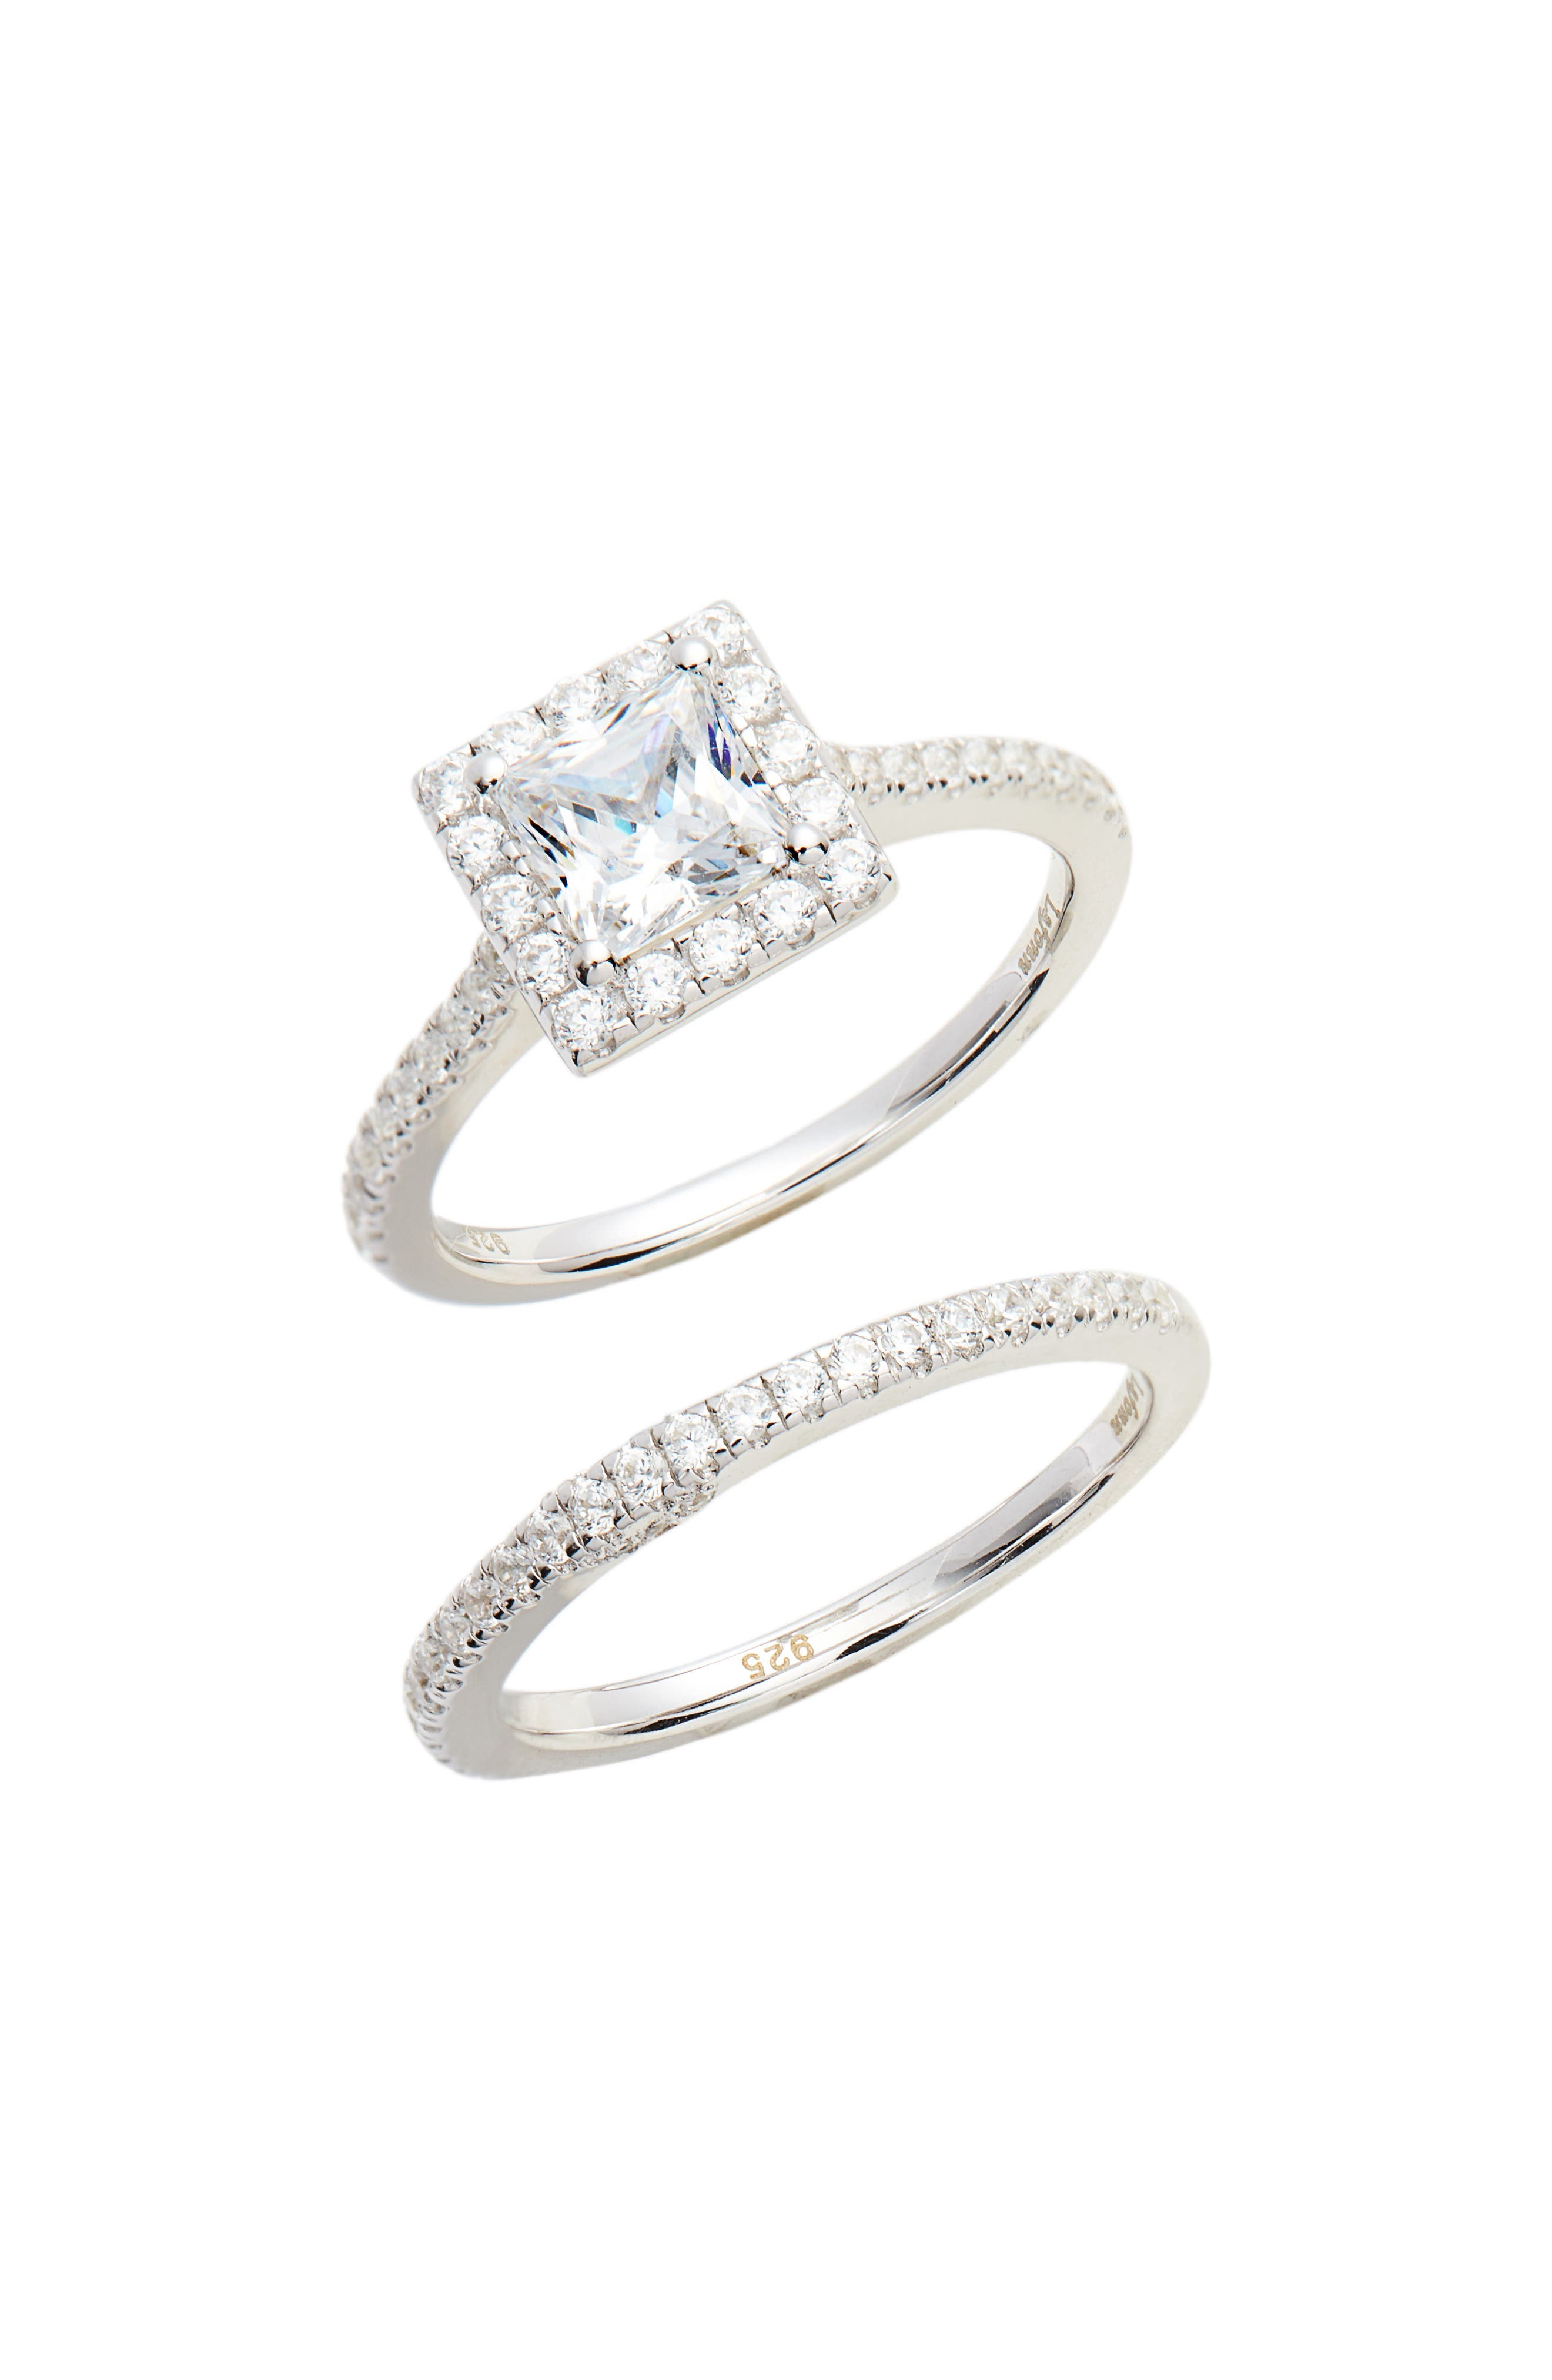 Joined At The Heart Cushion Cut Halo Wedding Ring Set